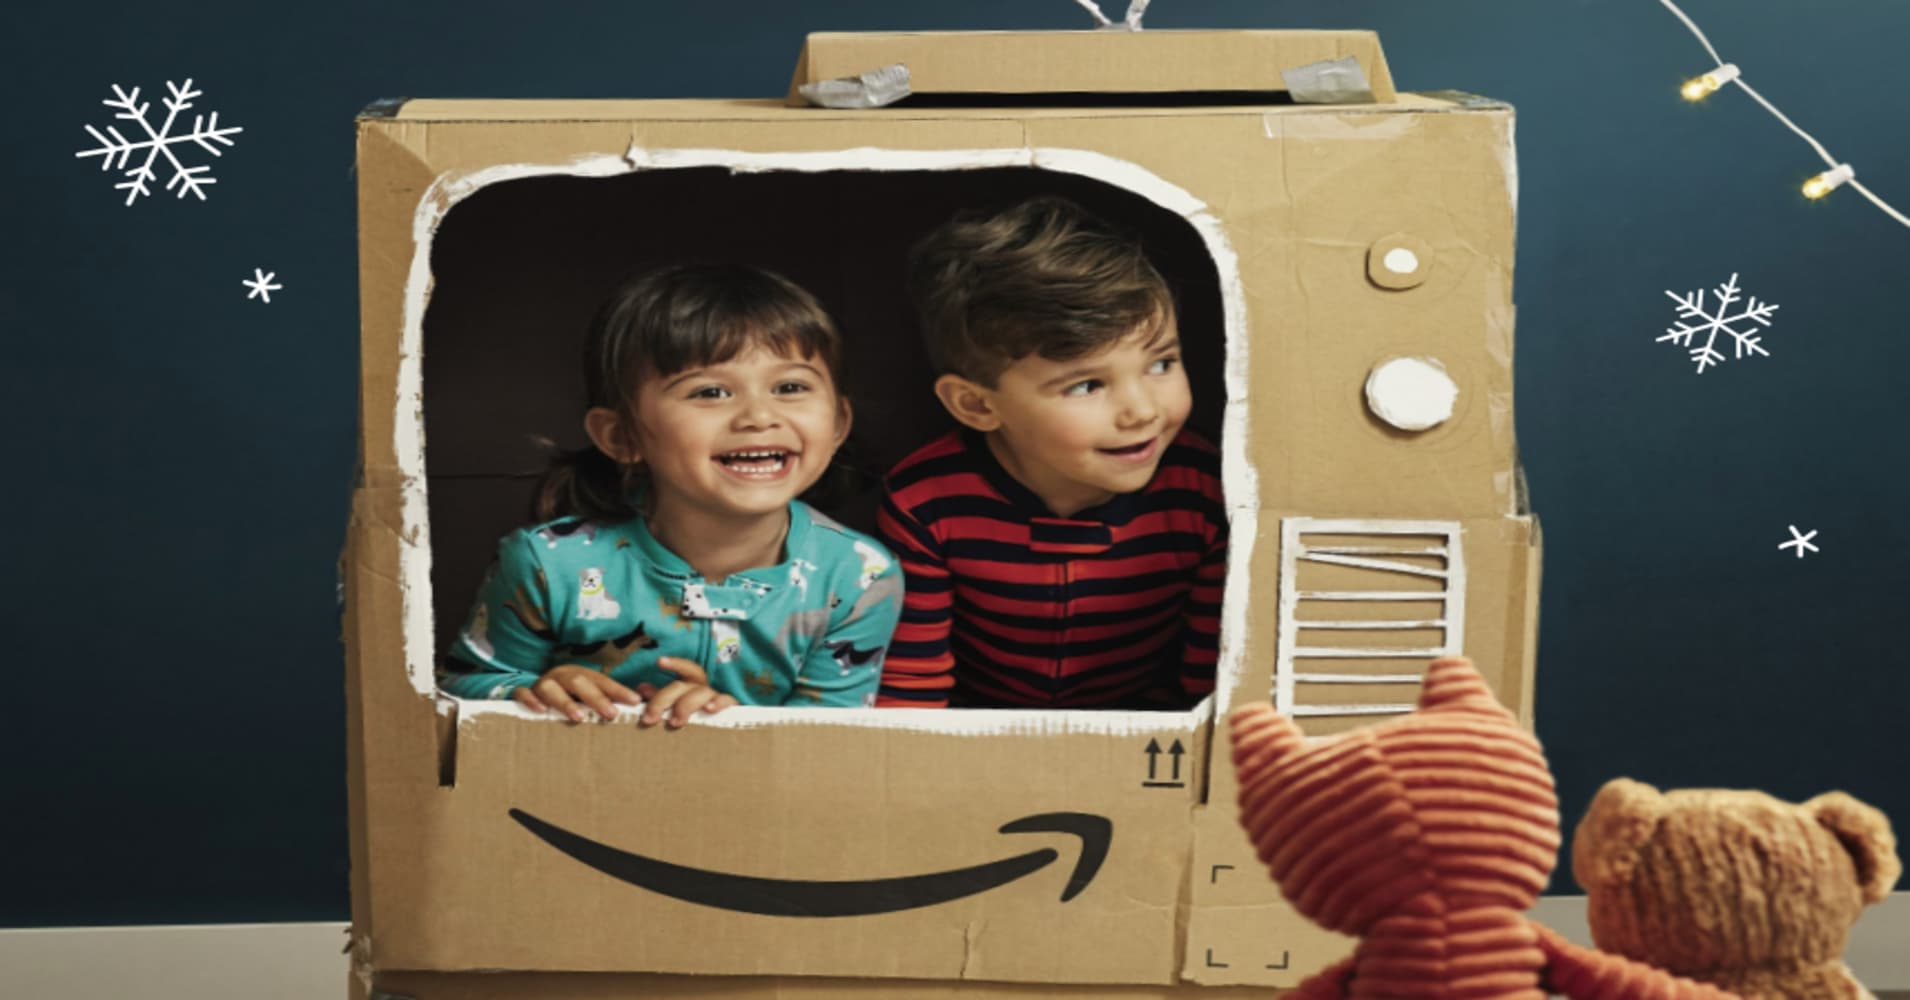 Amazon is mailing a printed holiday toy catalog to millions of customers